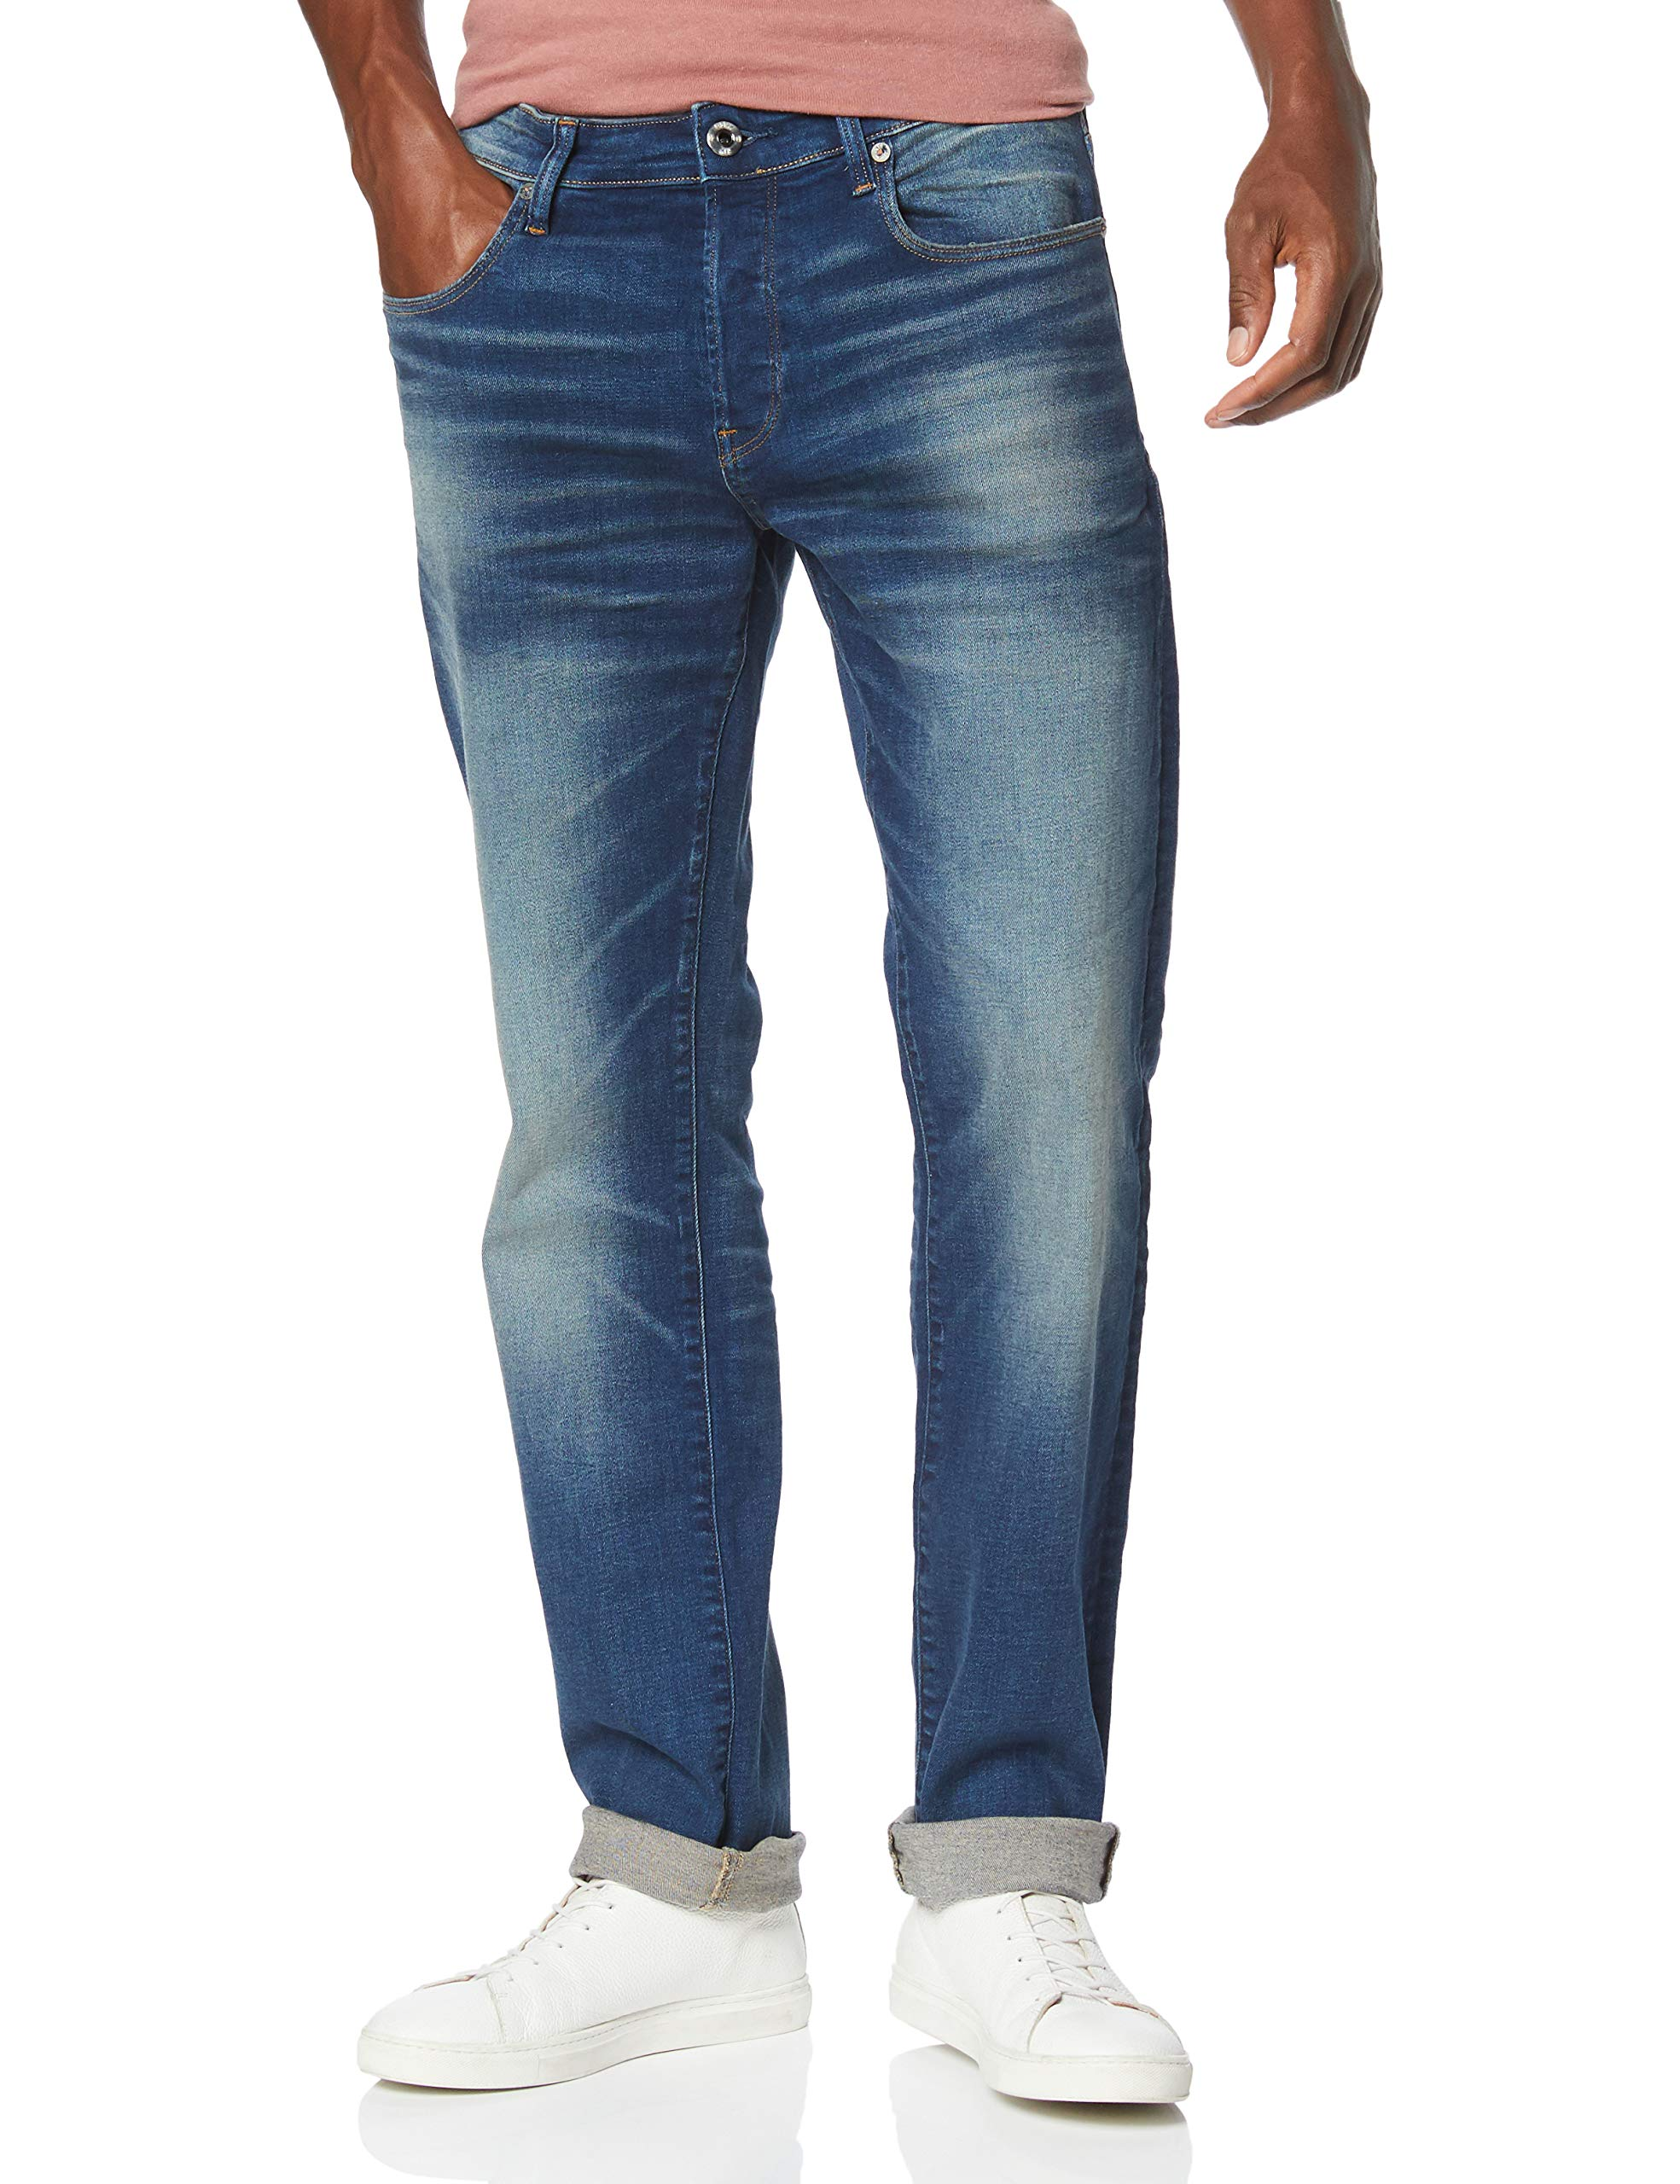 Jean Raw G a888W24 Blue DroitBleuworker A088 l30taille 3301 Faded Straight Fabricant24wL30Homme star XTiuOPkZ